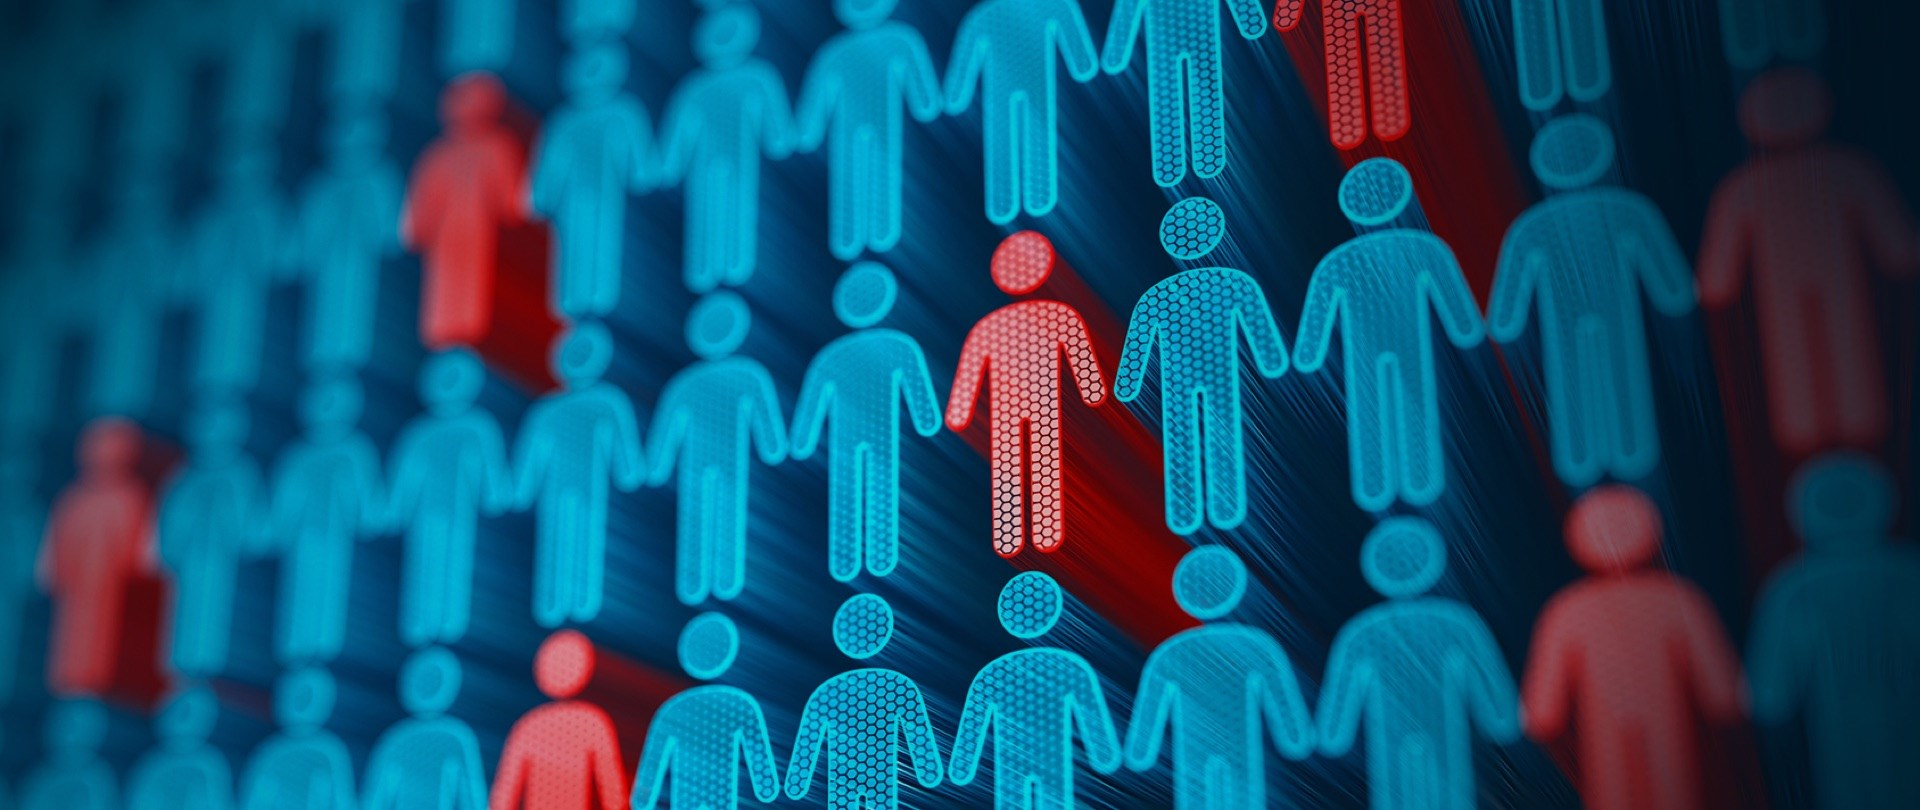 Improving outcomes by automating community engagement